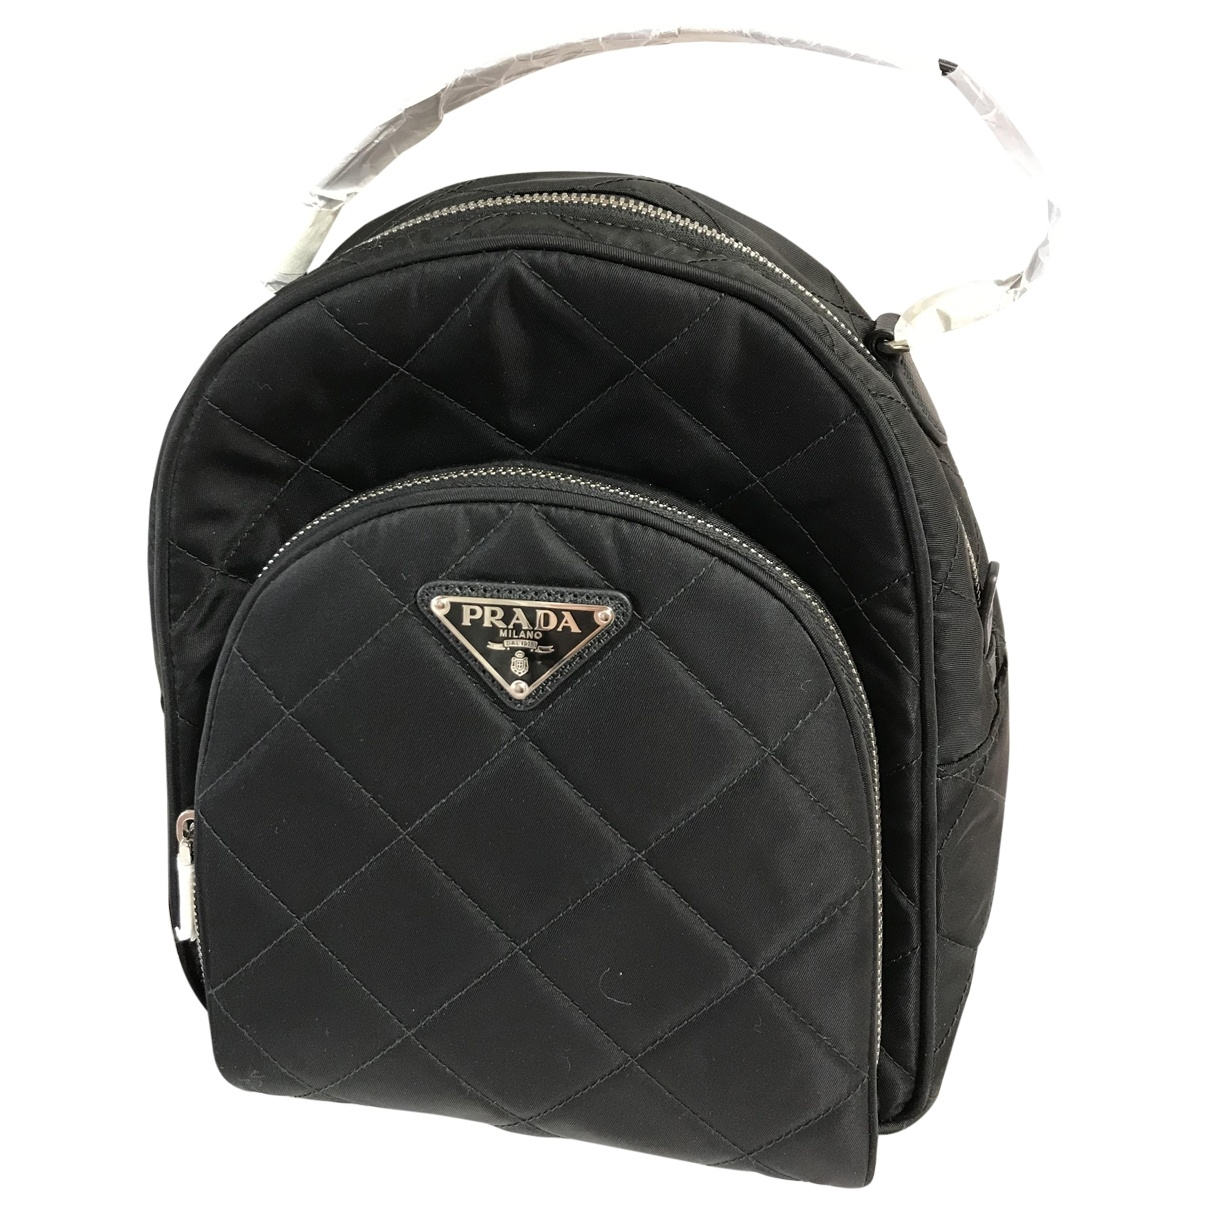 Prada \N Black Cloth handbag for Women \N